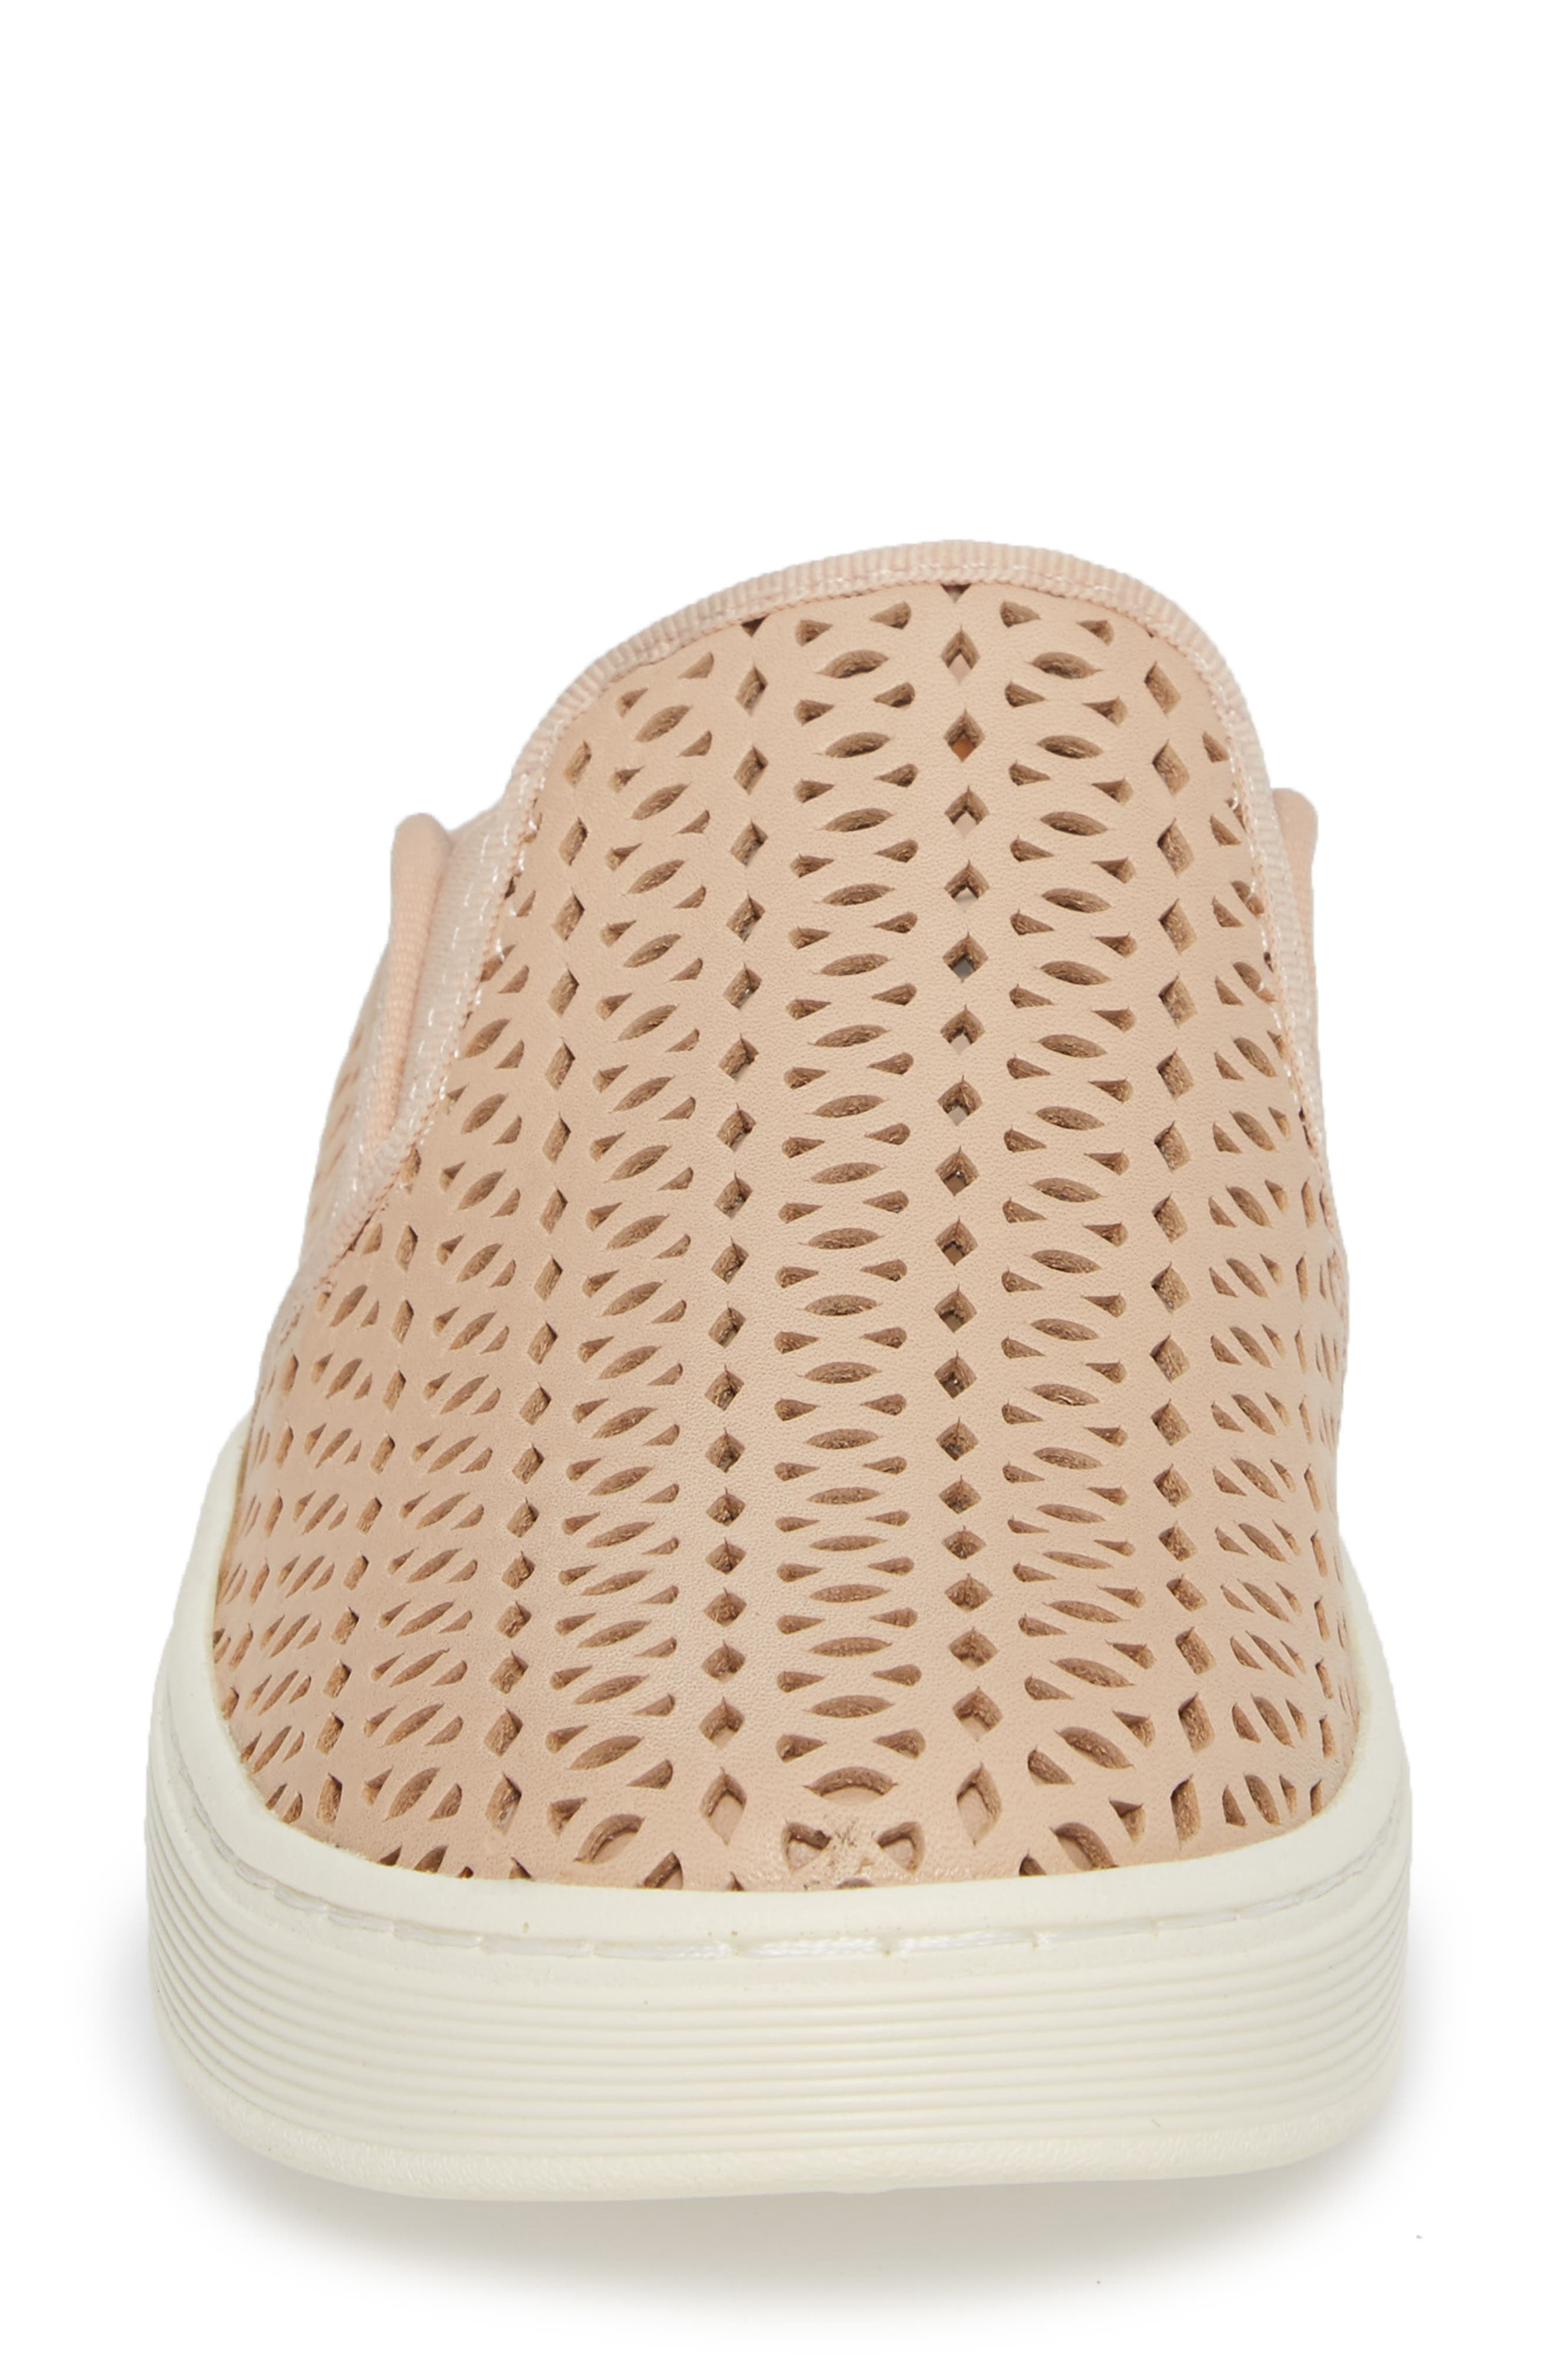 Somers II Sneaker Mule,                             Alternate thumbnail 4, color,                             Blush Leather